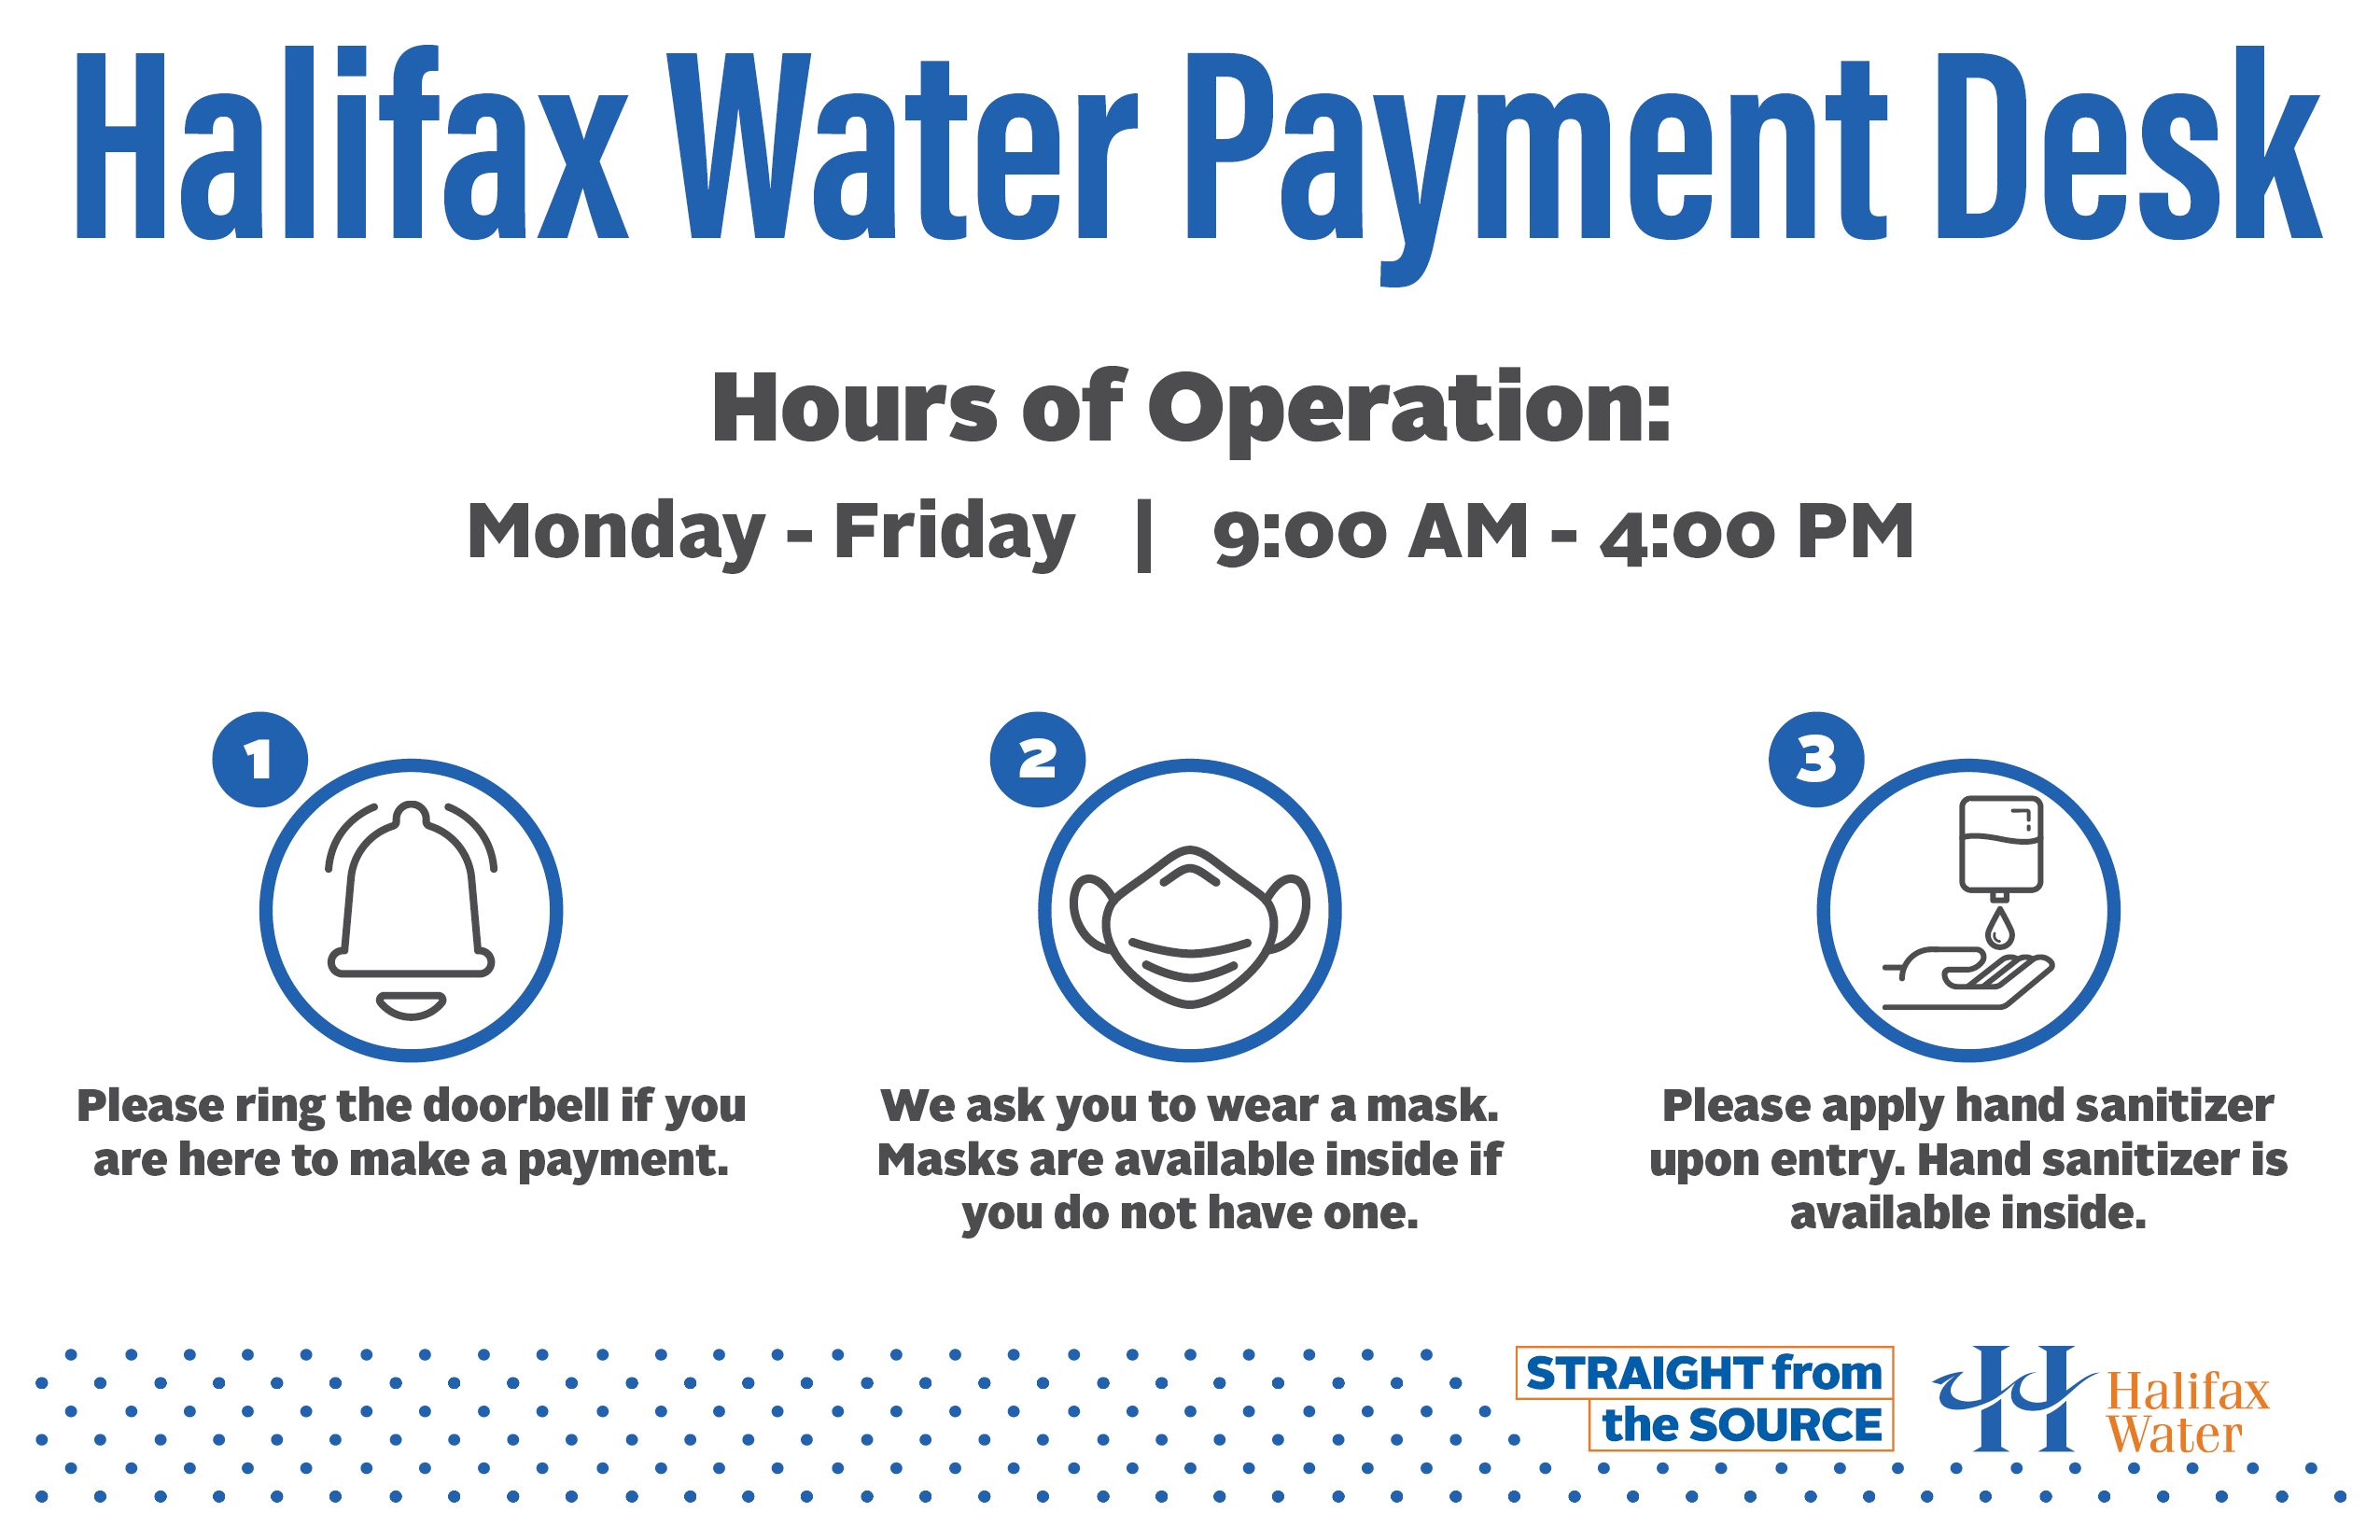 Halifax Water Payment Desk - Front Door Sign - 11x17